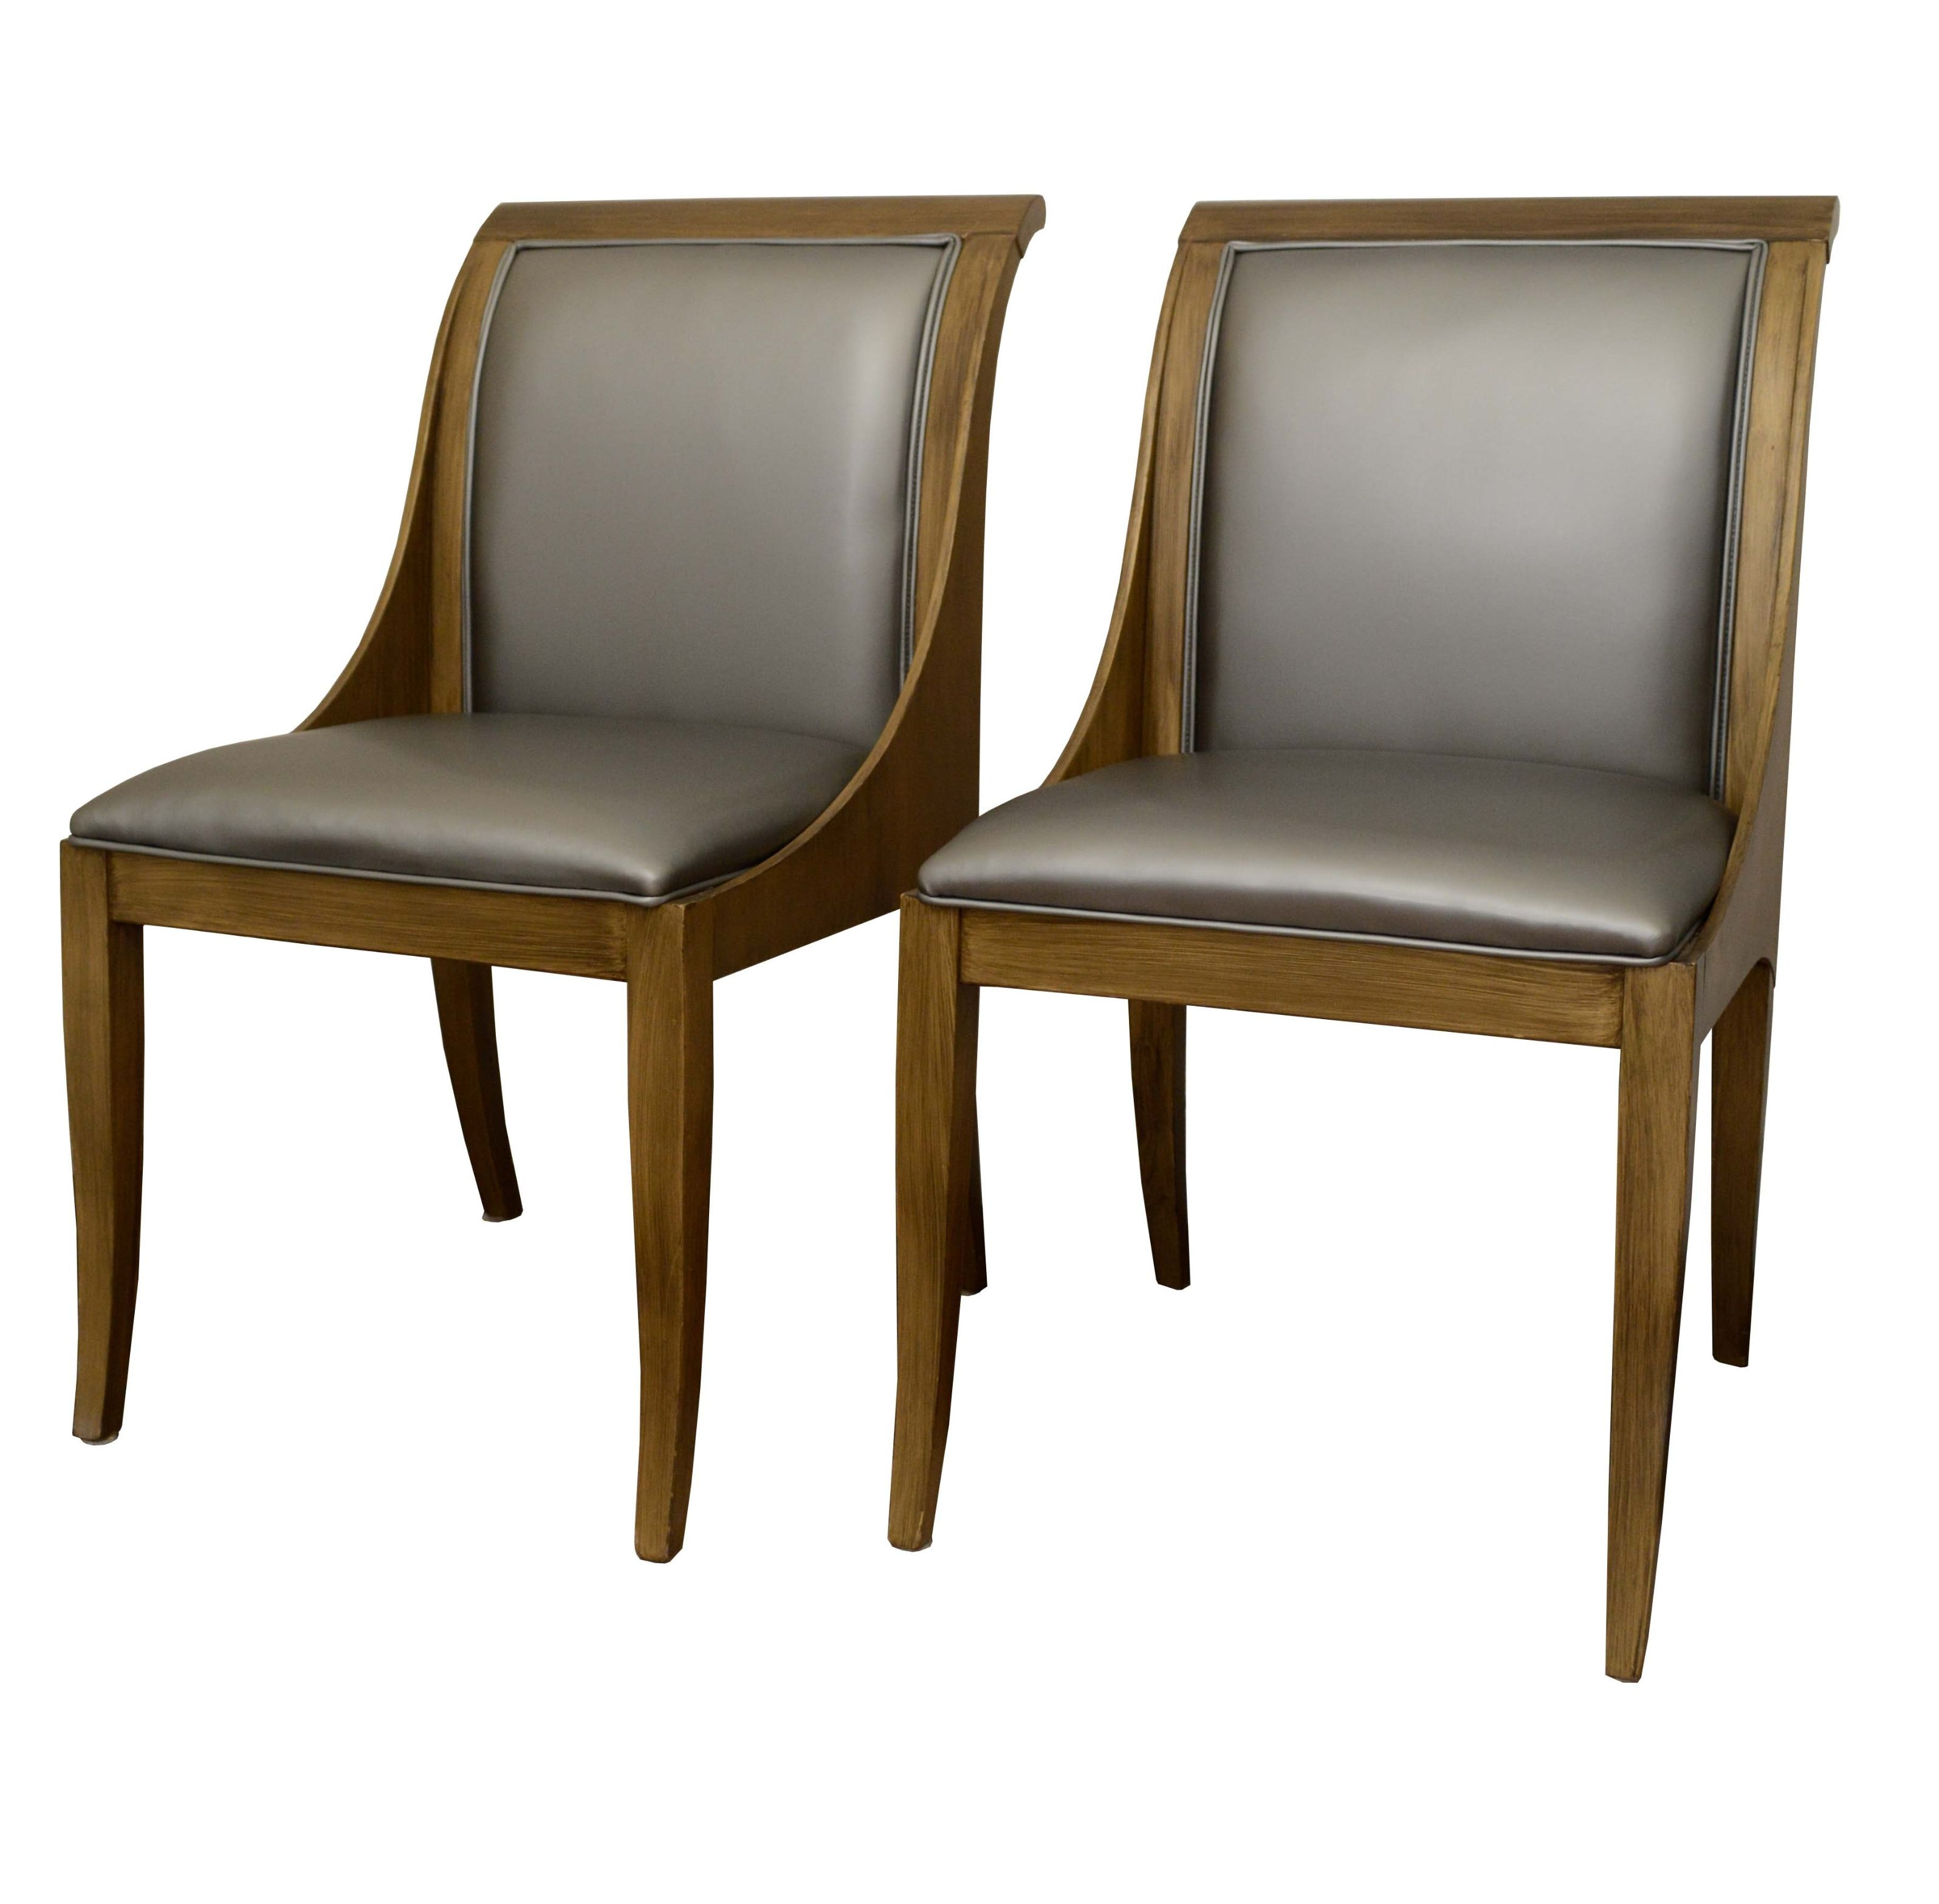 Contemporary Vinyl Upholstered Dining Chairs